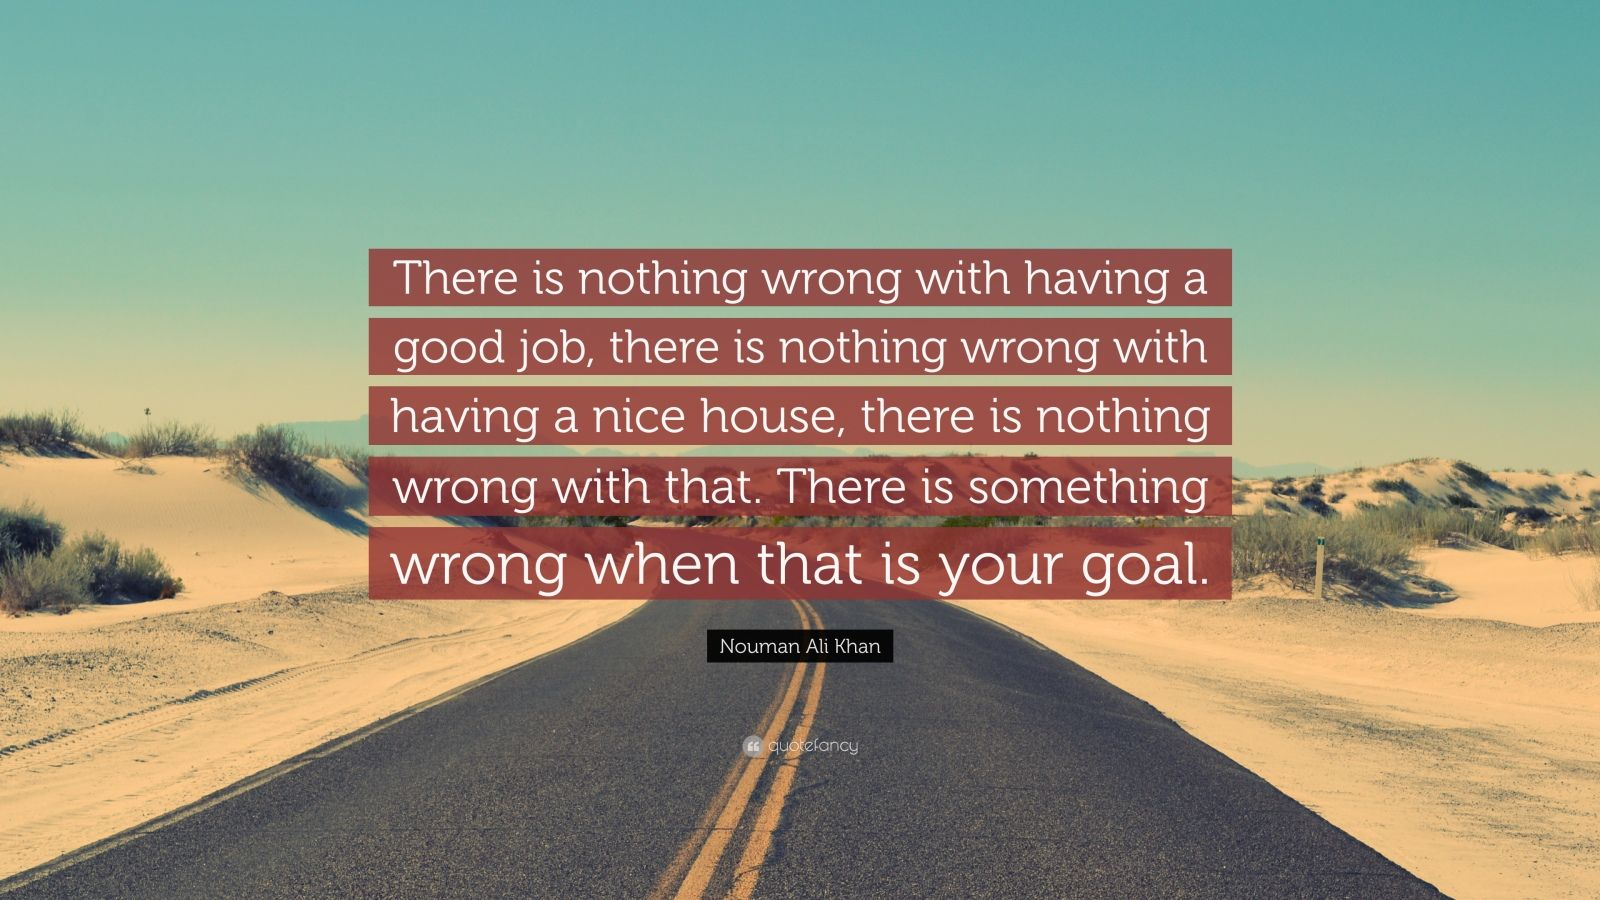 """Nouman Ali Khan Quote: """"There is nothing wrong with having a good job, there is nothing wrong with having a nice house, there is nothing wrong with that. There is something wrong when that is your goal."""""""